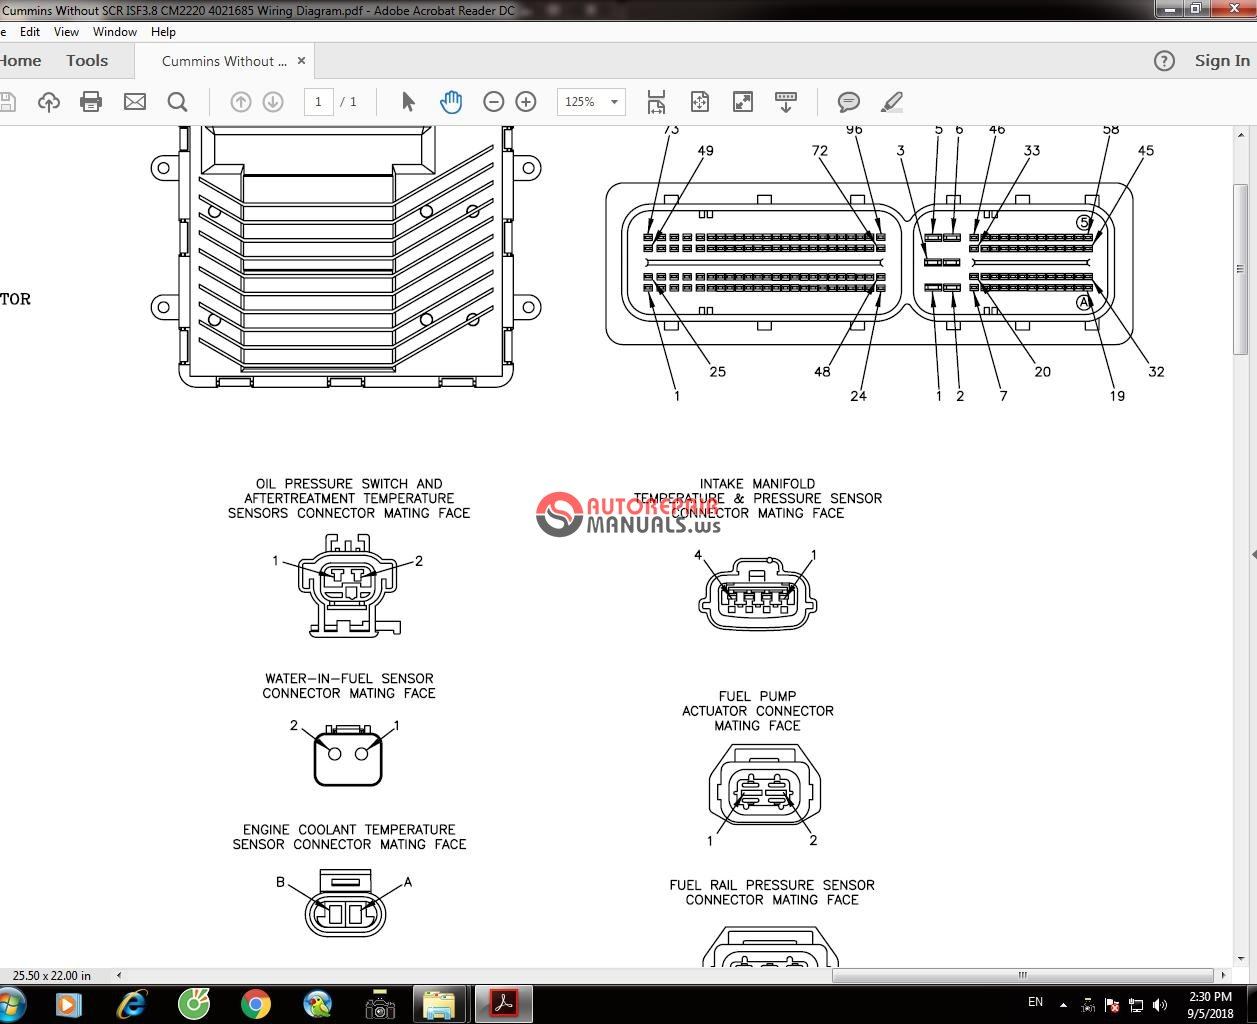 Cummins Without Scr Isf38 Cm2220 4021685 Wiring Diagram Auto 3